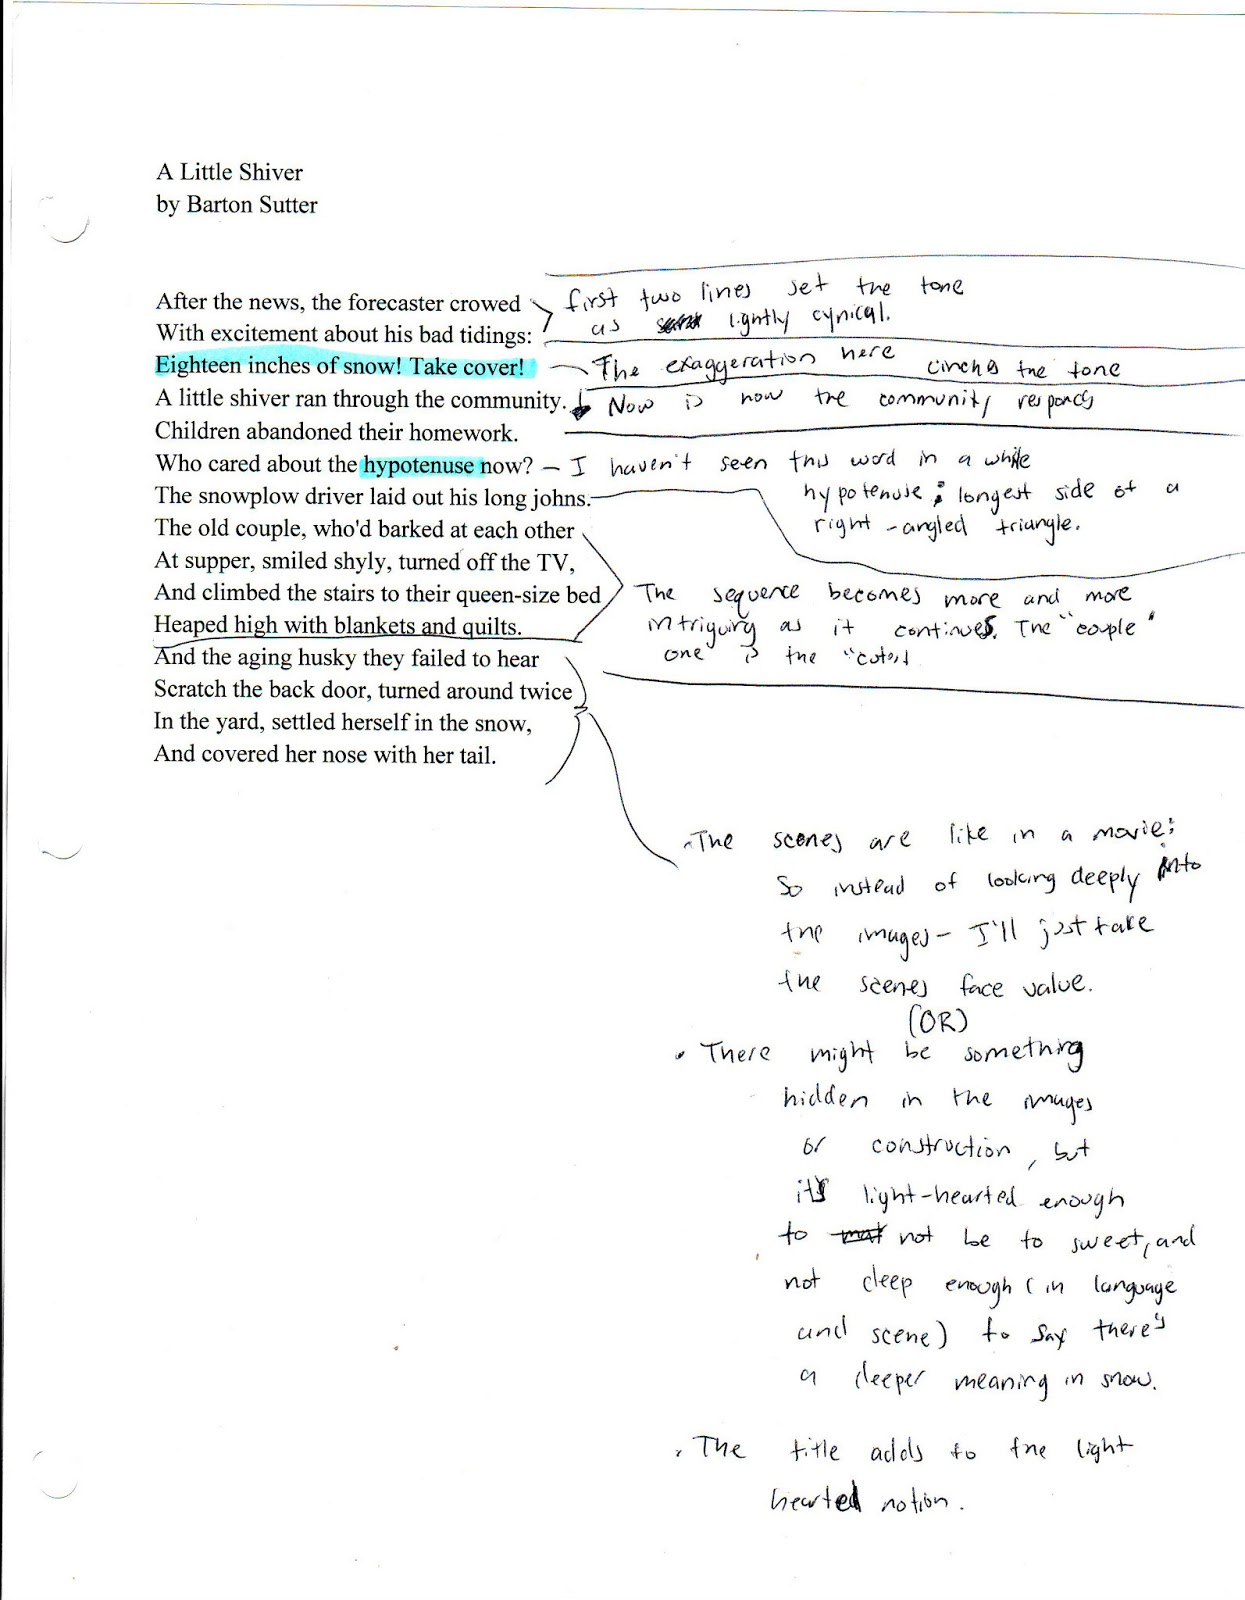 Poem analysis essay example